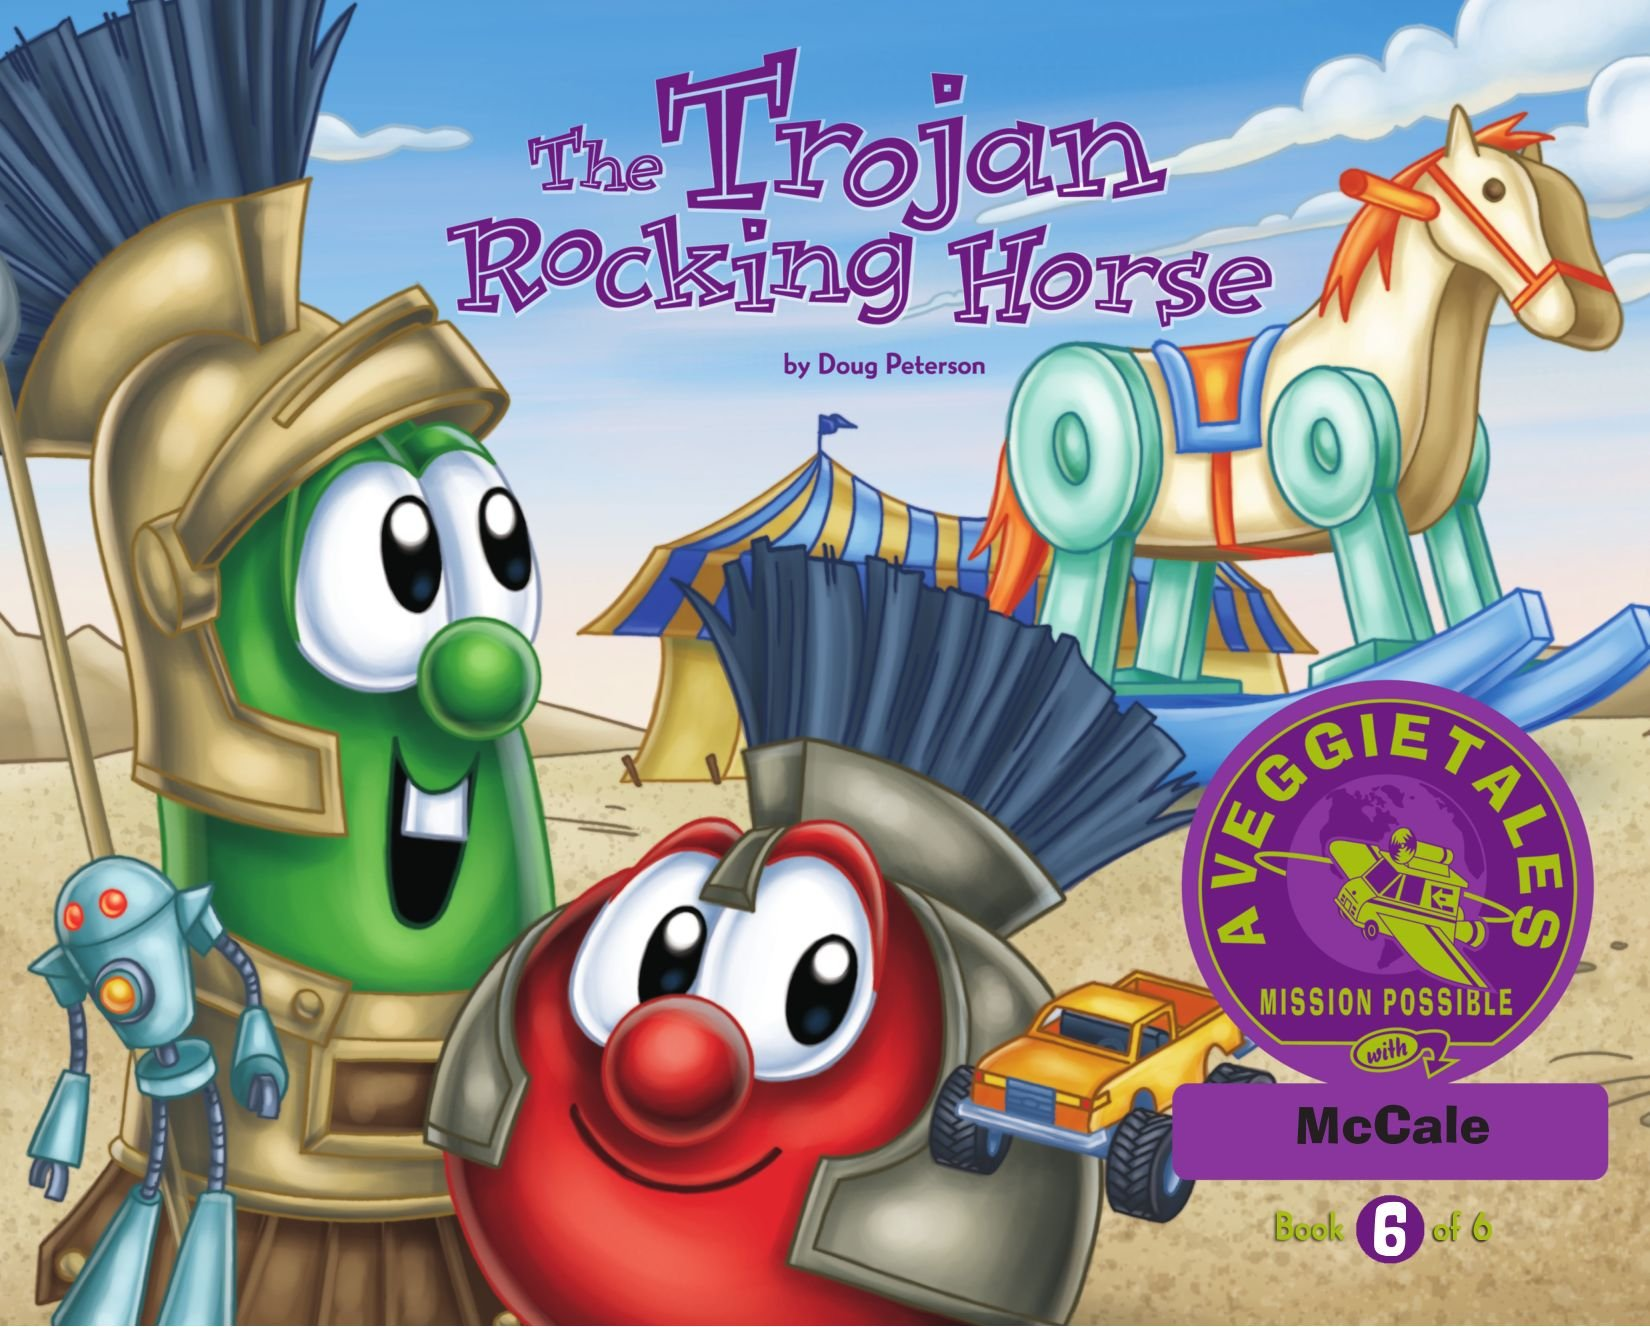 The Trojan Rocking Horse - VeggieTales Mission Possible Adventure Series #6: Personalized for McCale (Girl) ebook